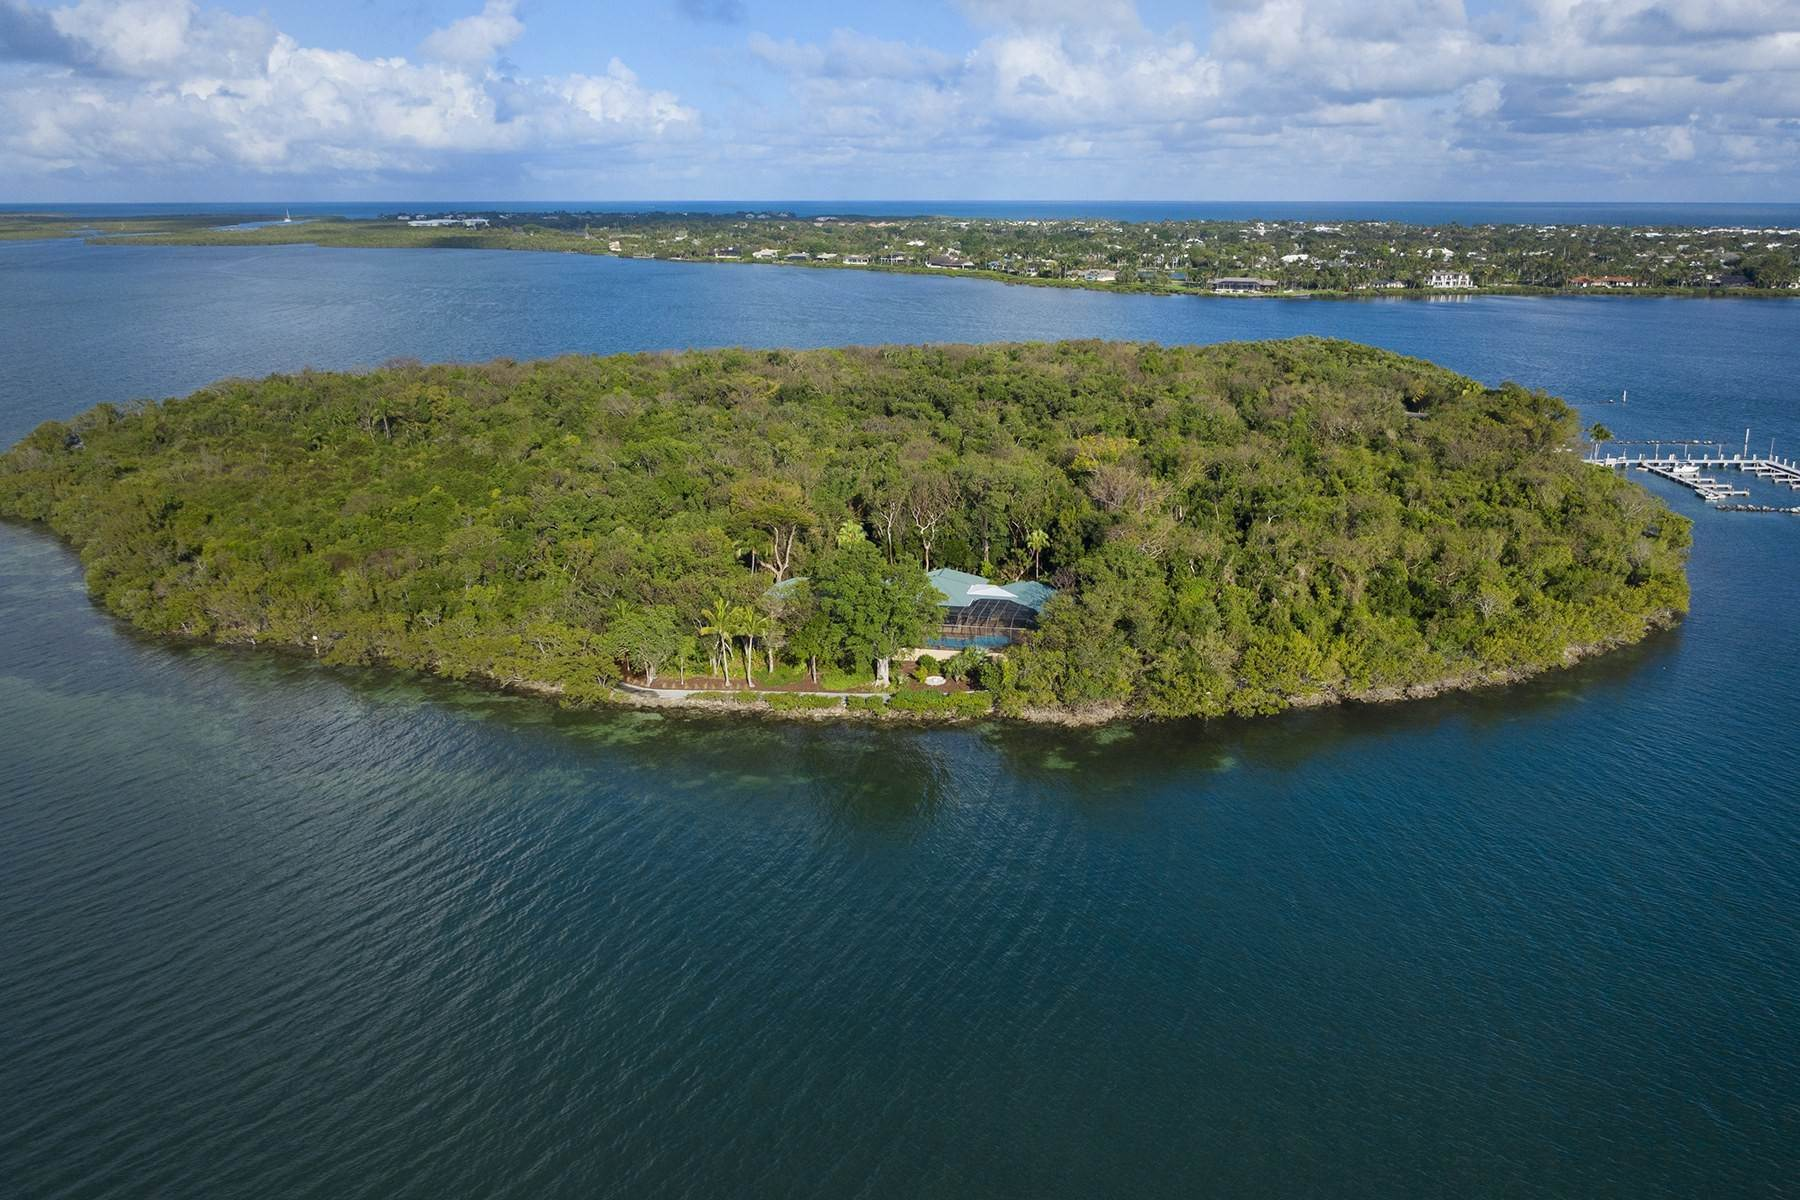 3. Property for Sale at Pumpkin Key - Private Island, Key Largo, FL Key Largo, Florida 33037 United States